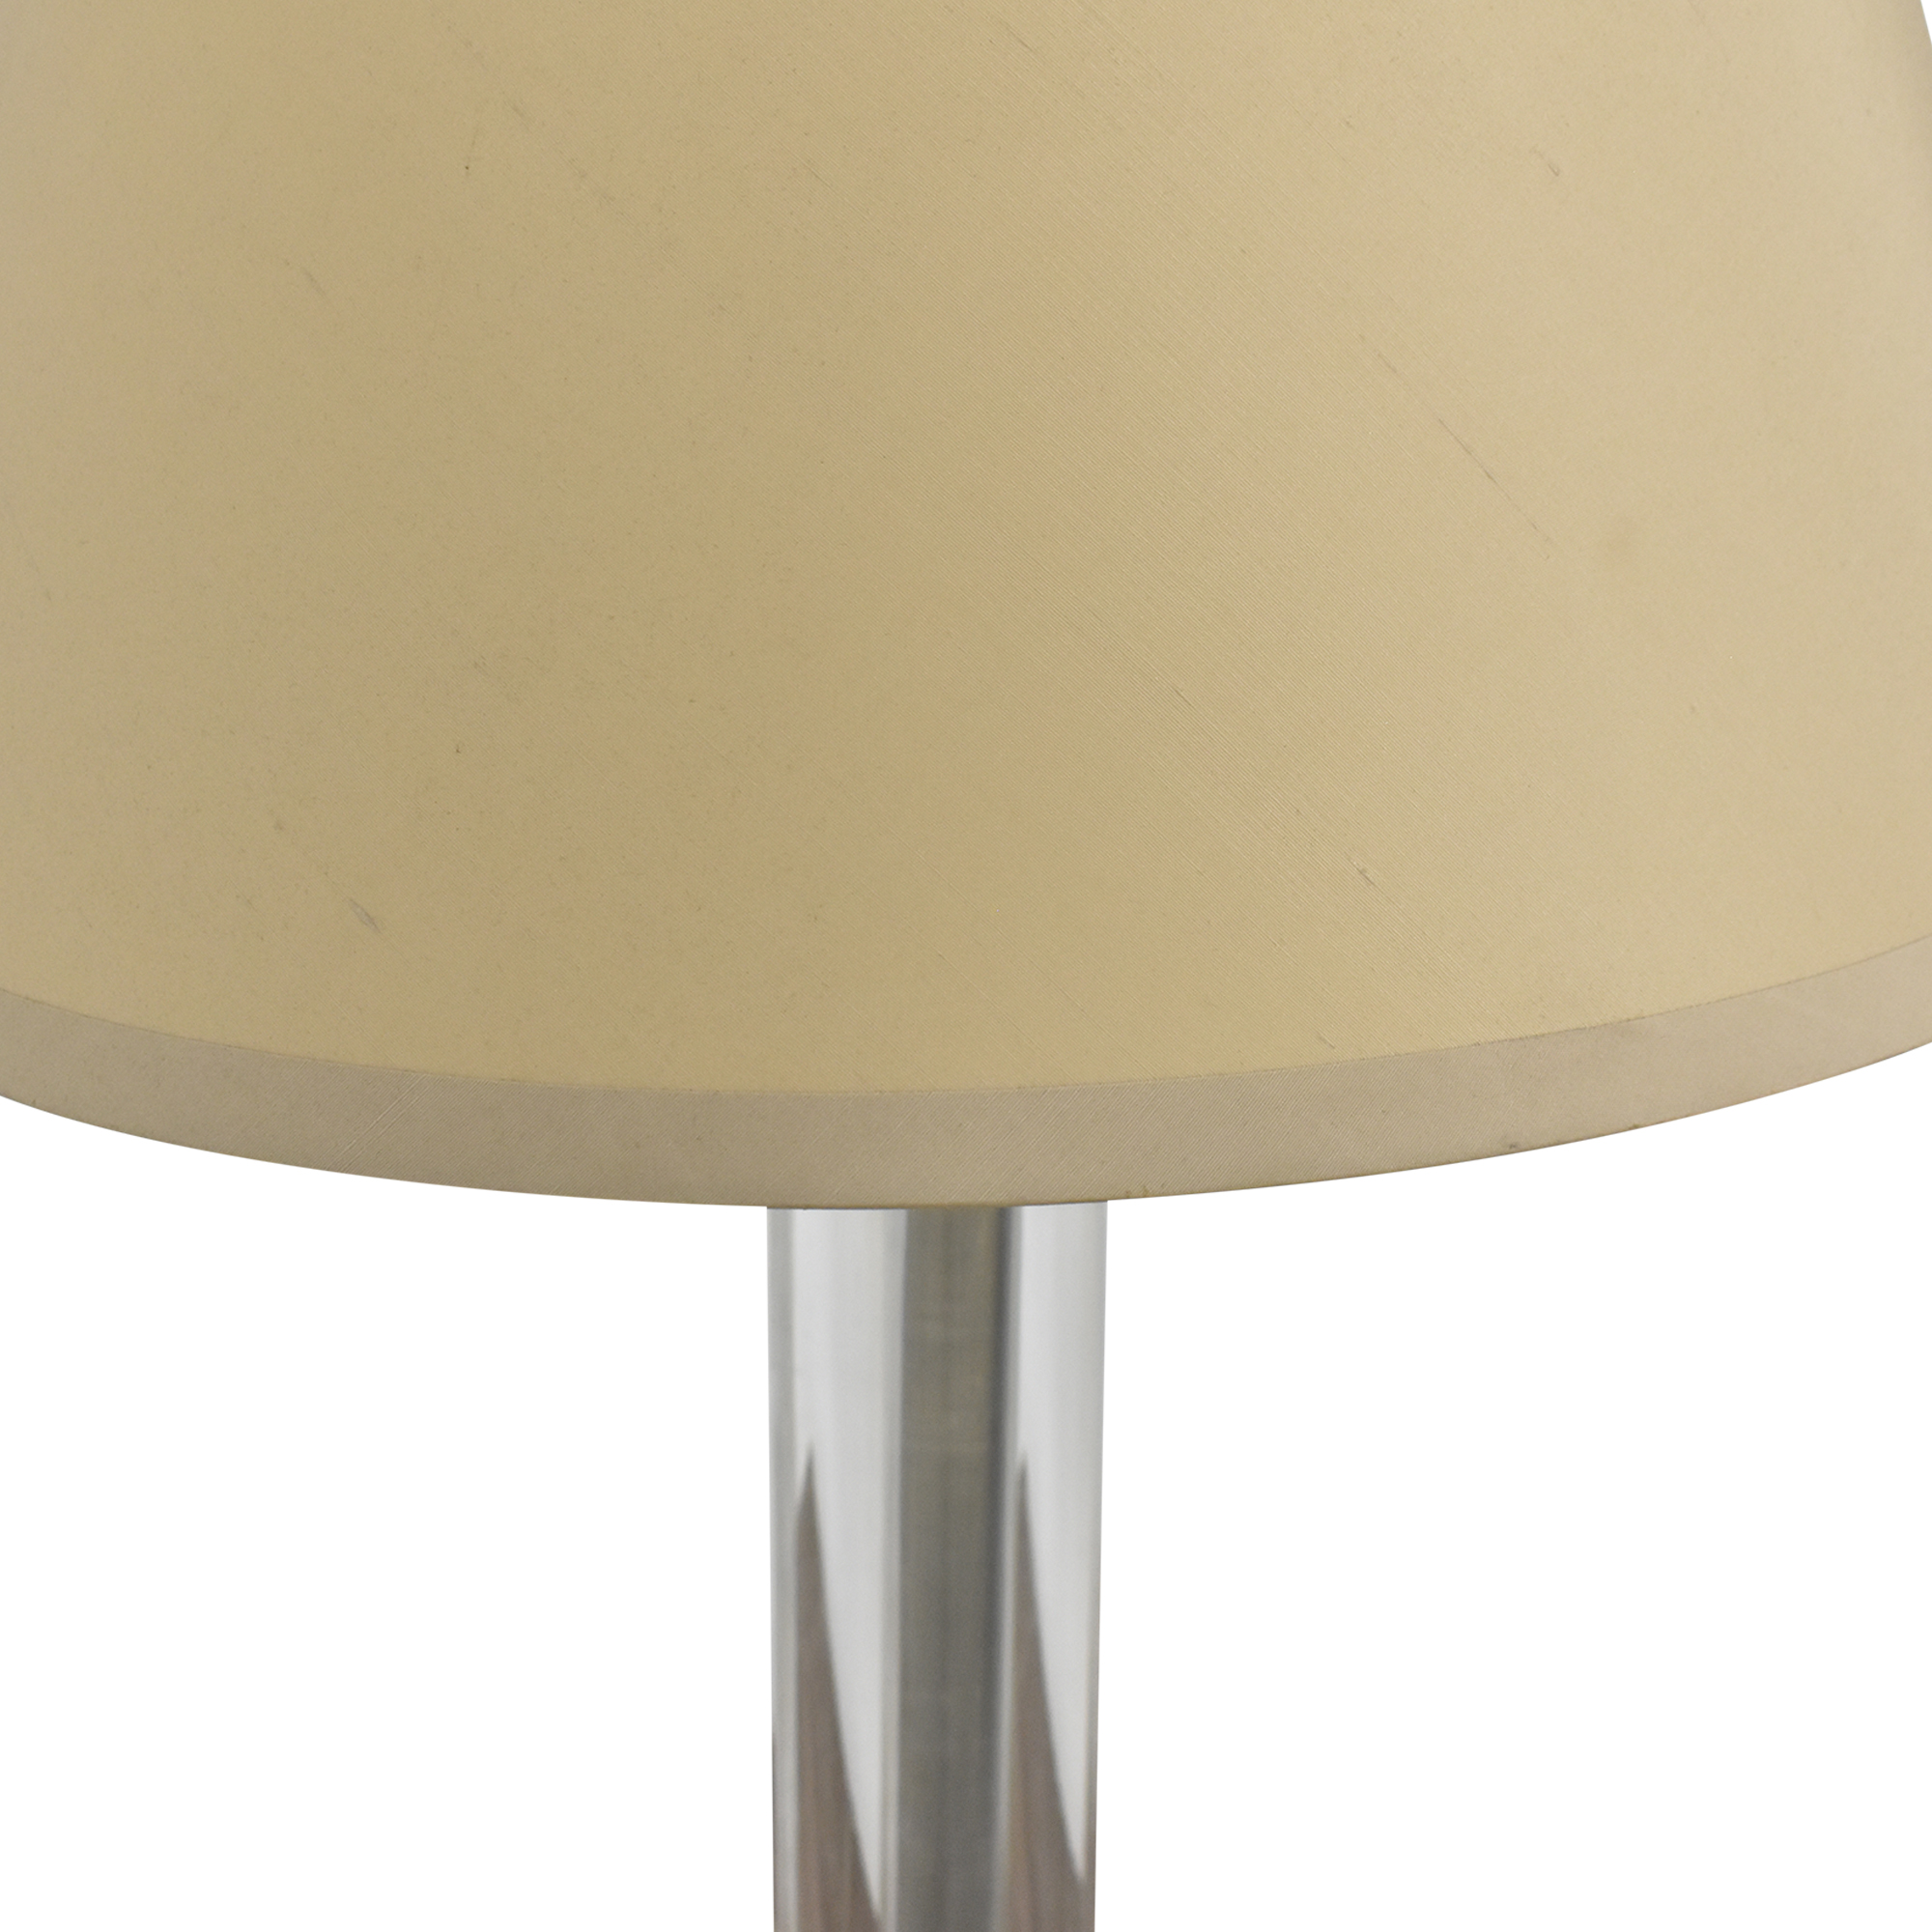 Restoration Hardware Restoration Hardware Table Lamp for sale